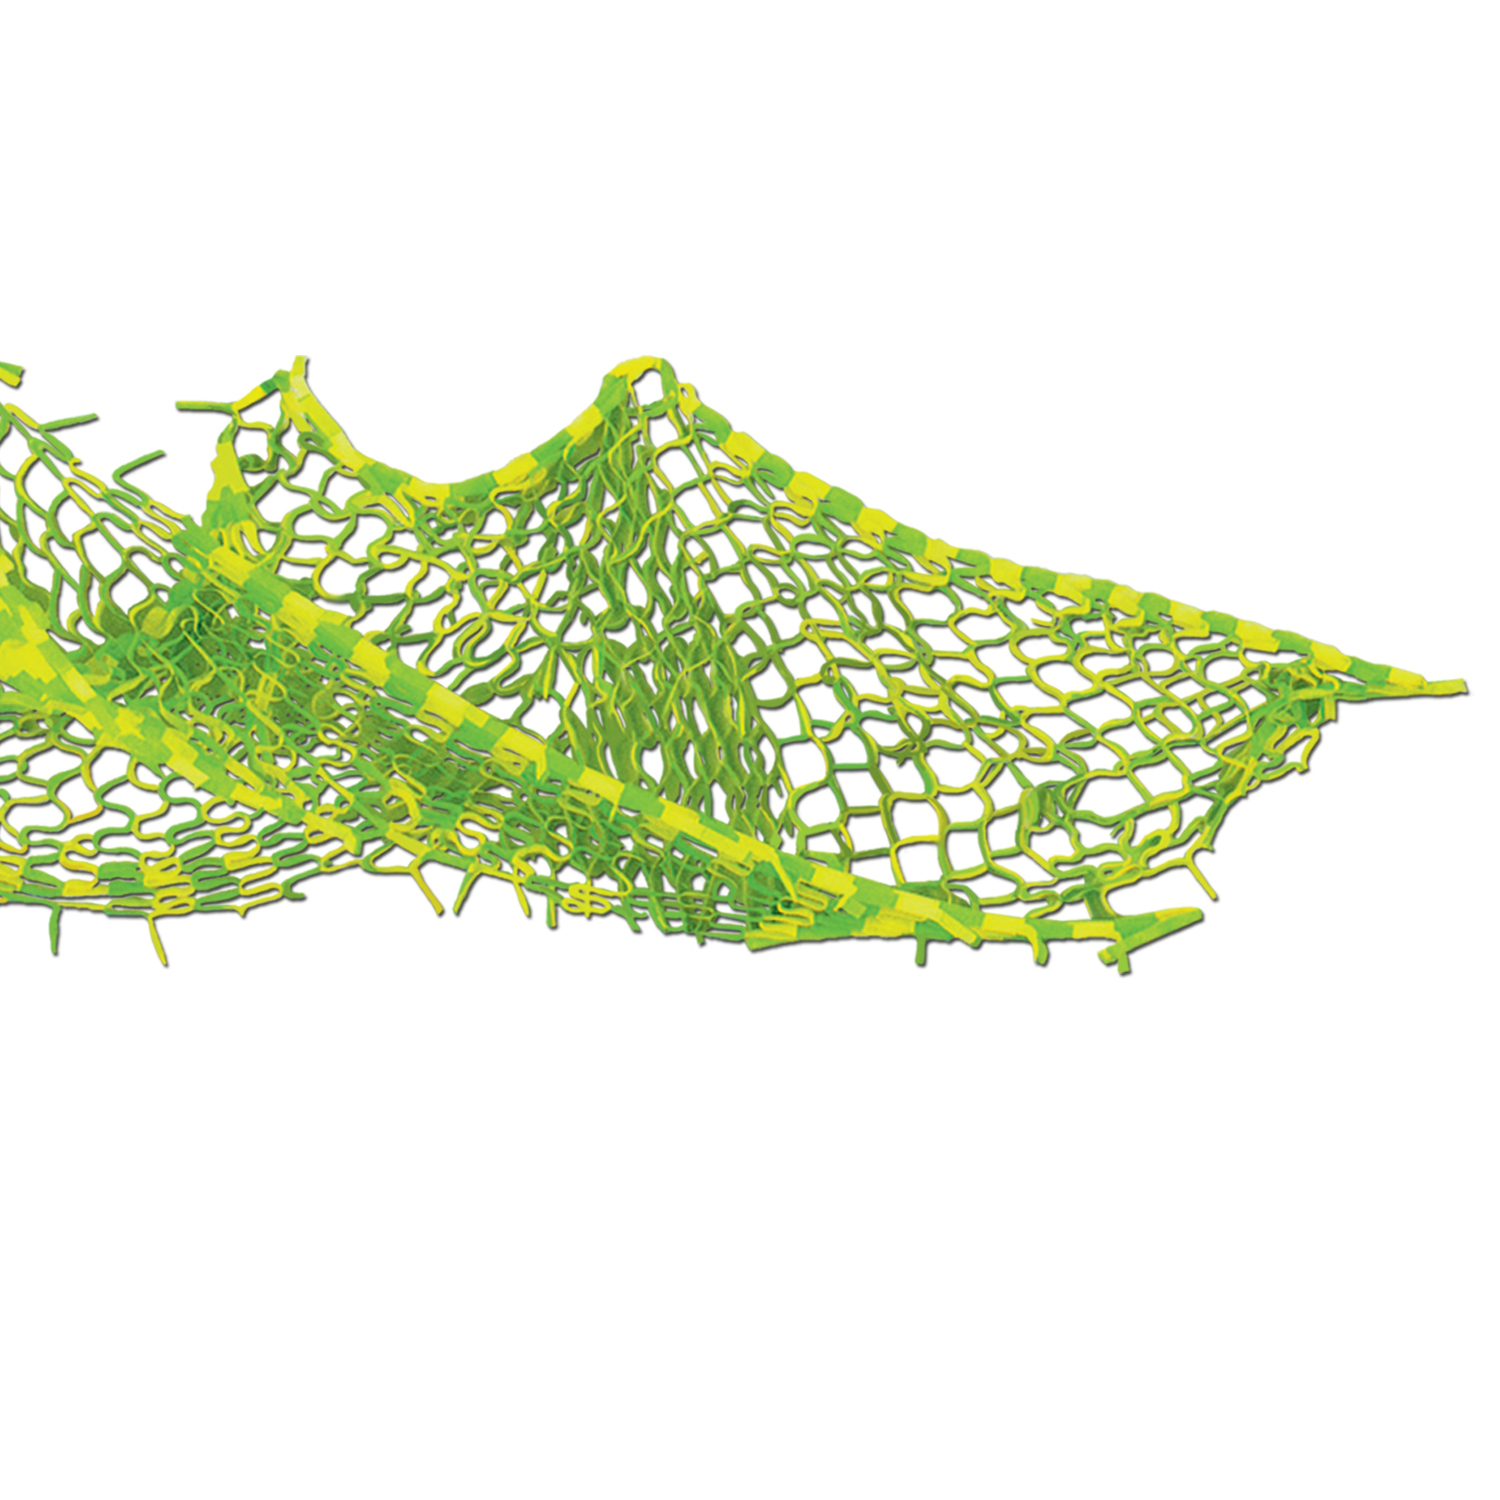 Tissue Fish Netting (Pack of 12) Tissue Fish Netting, decoration, luau, new years eve, wholesale, inexpensive, bulk